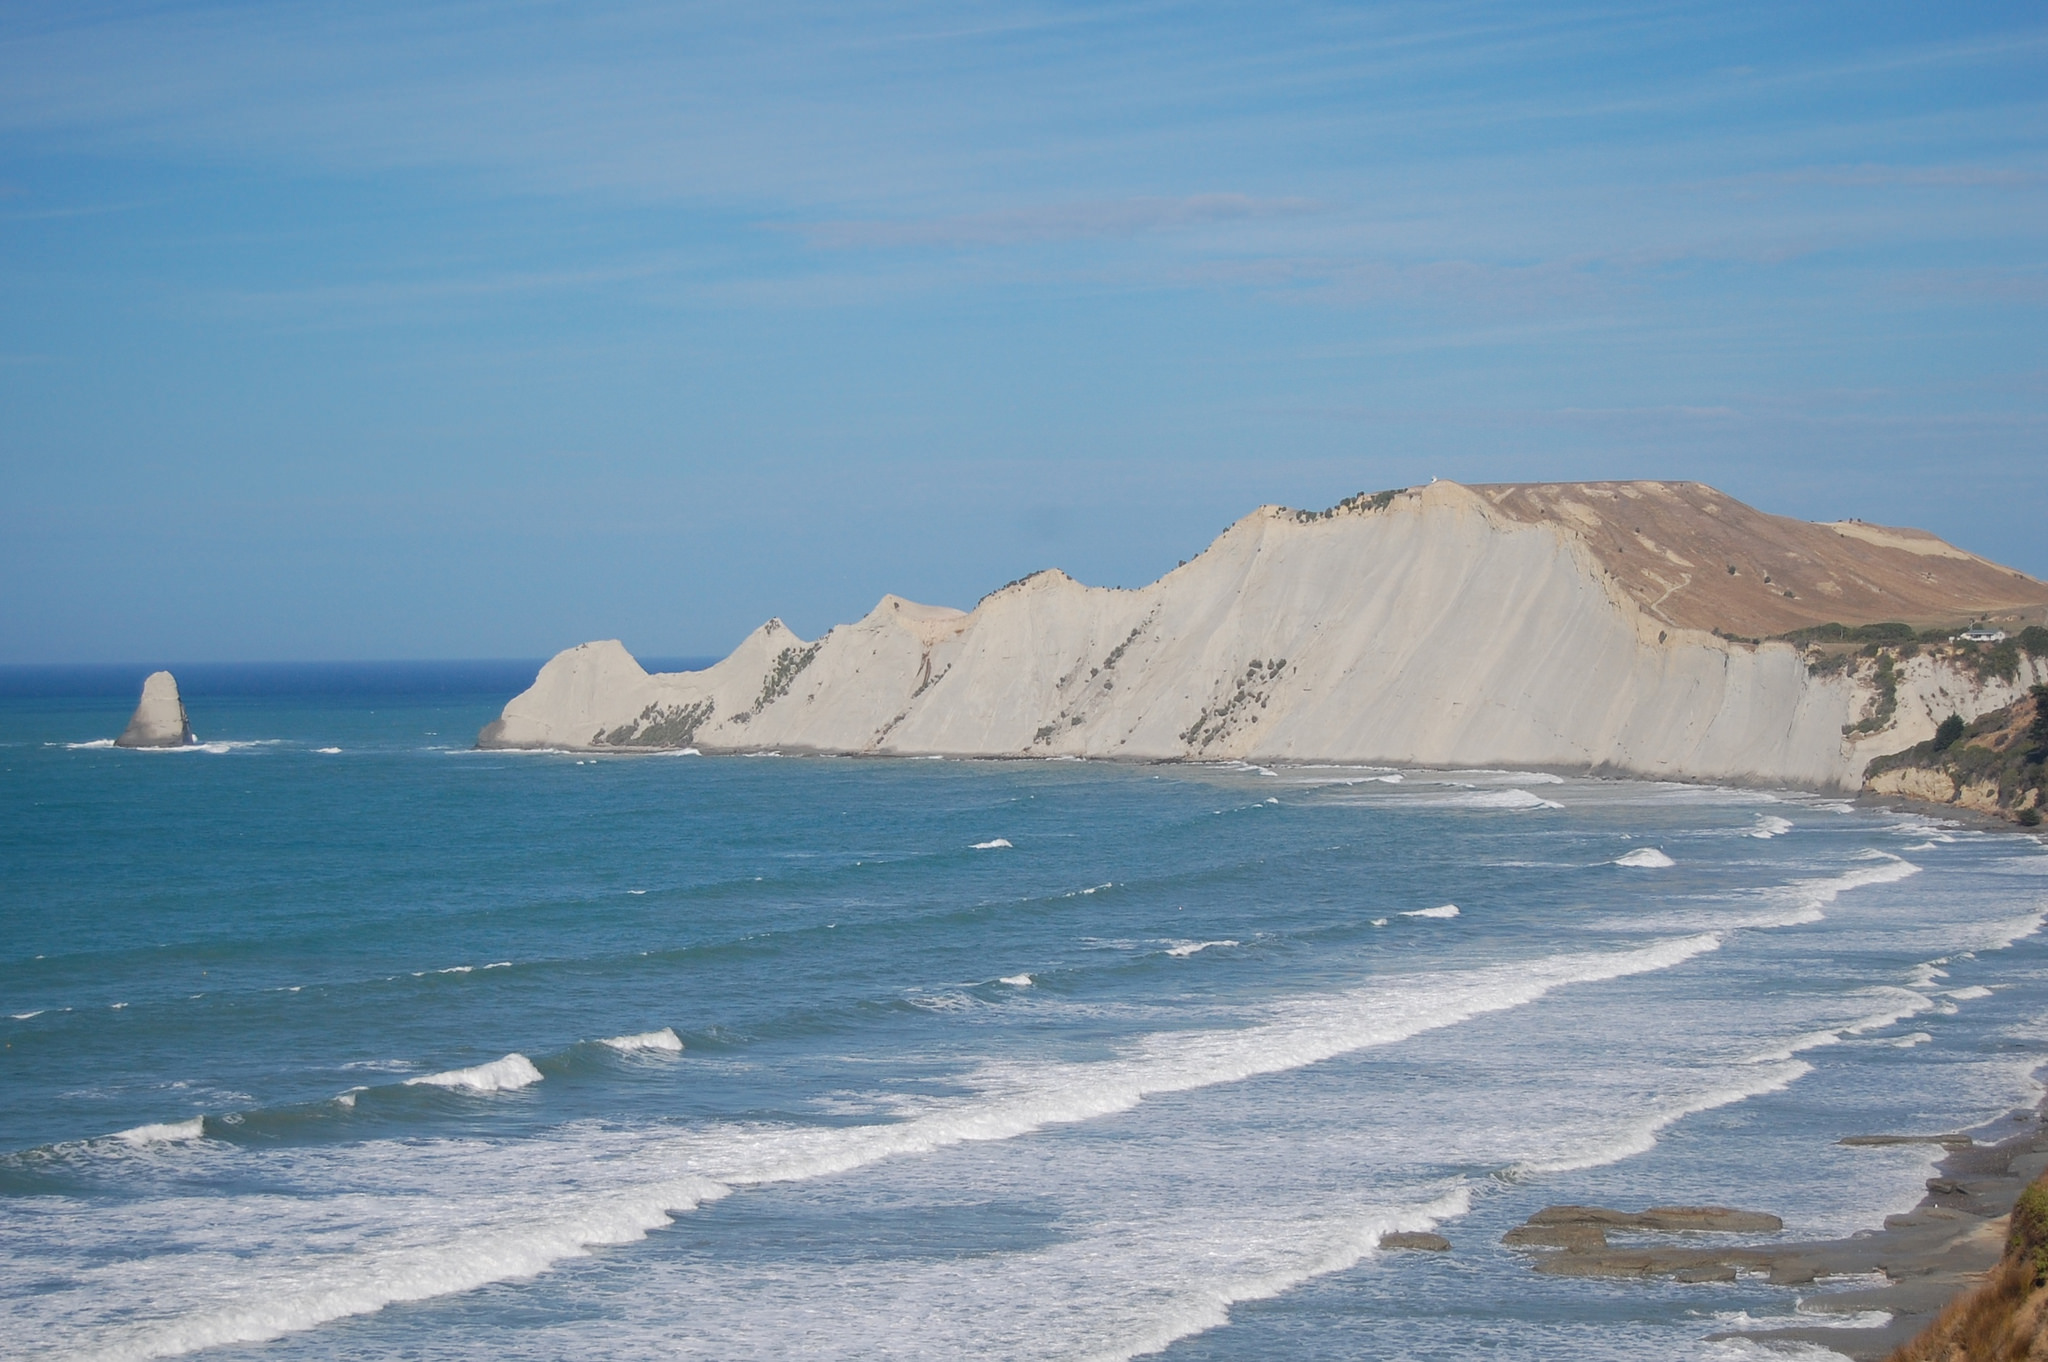 Cape Kidnappers - Coast in New Zealand - Thousand Wonders